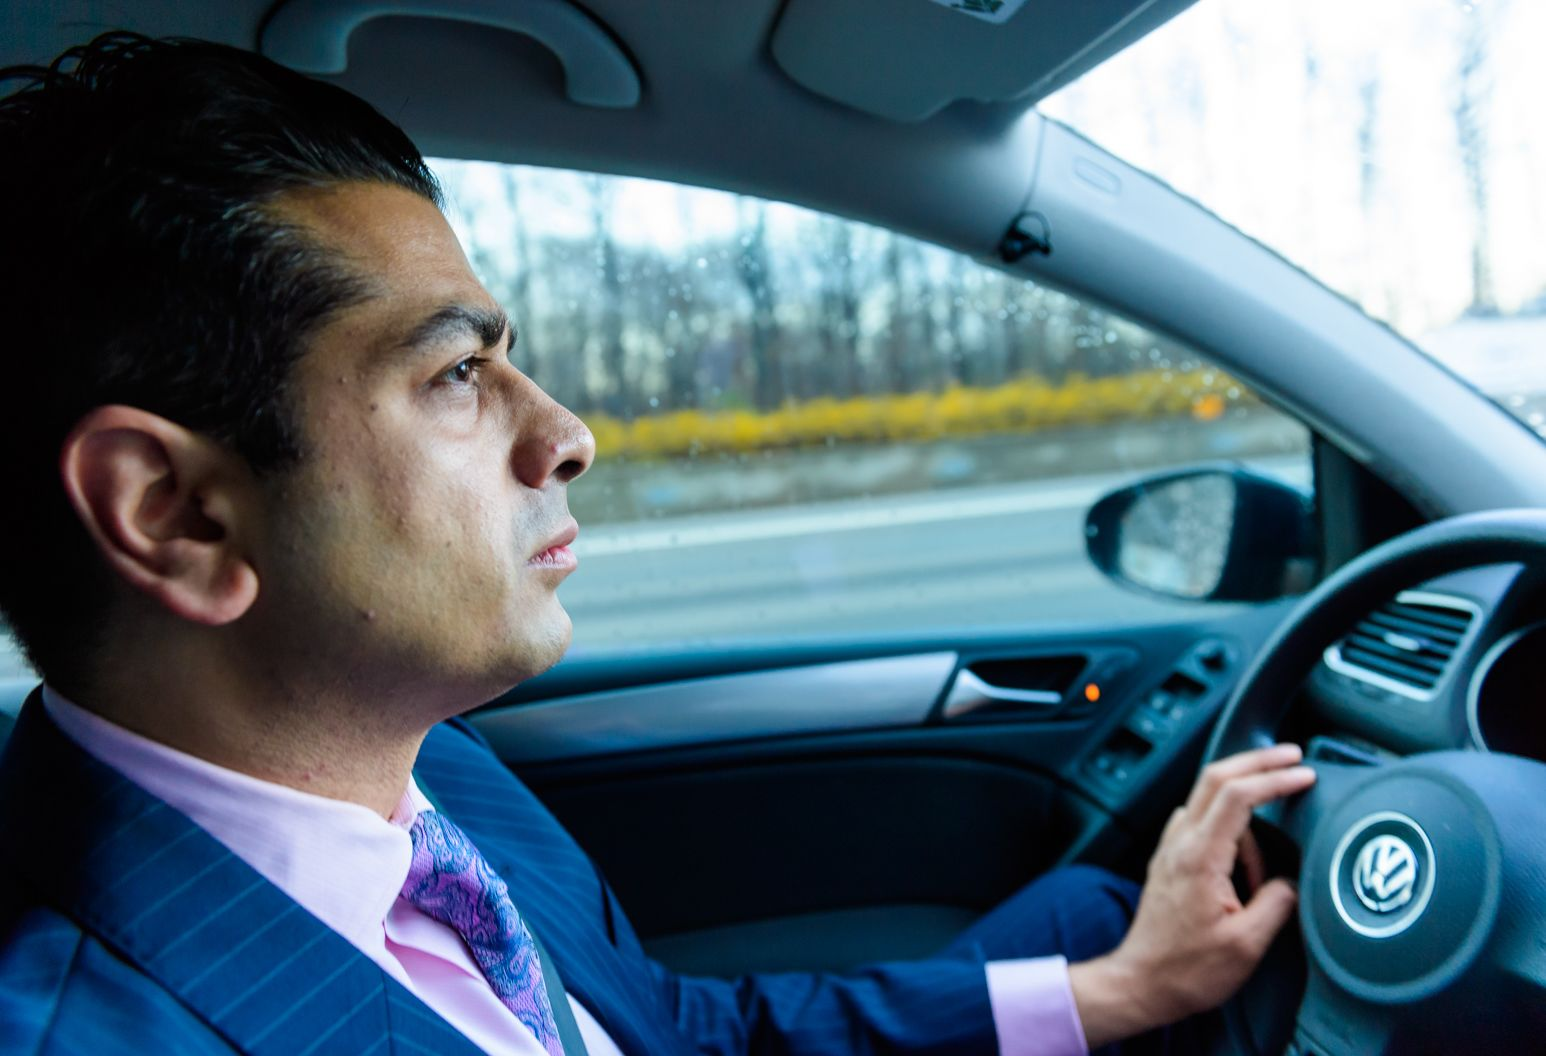 Man in striped blue suit, pink shirt, and purple graphic tie is focused on the road as he drives in his luxurious Volkswagon.